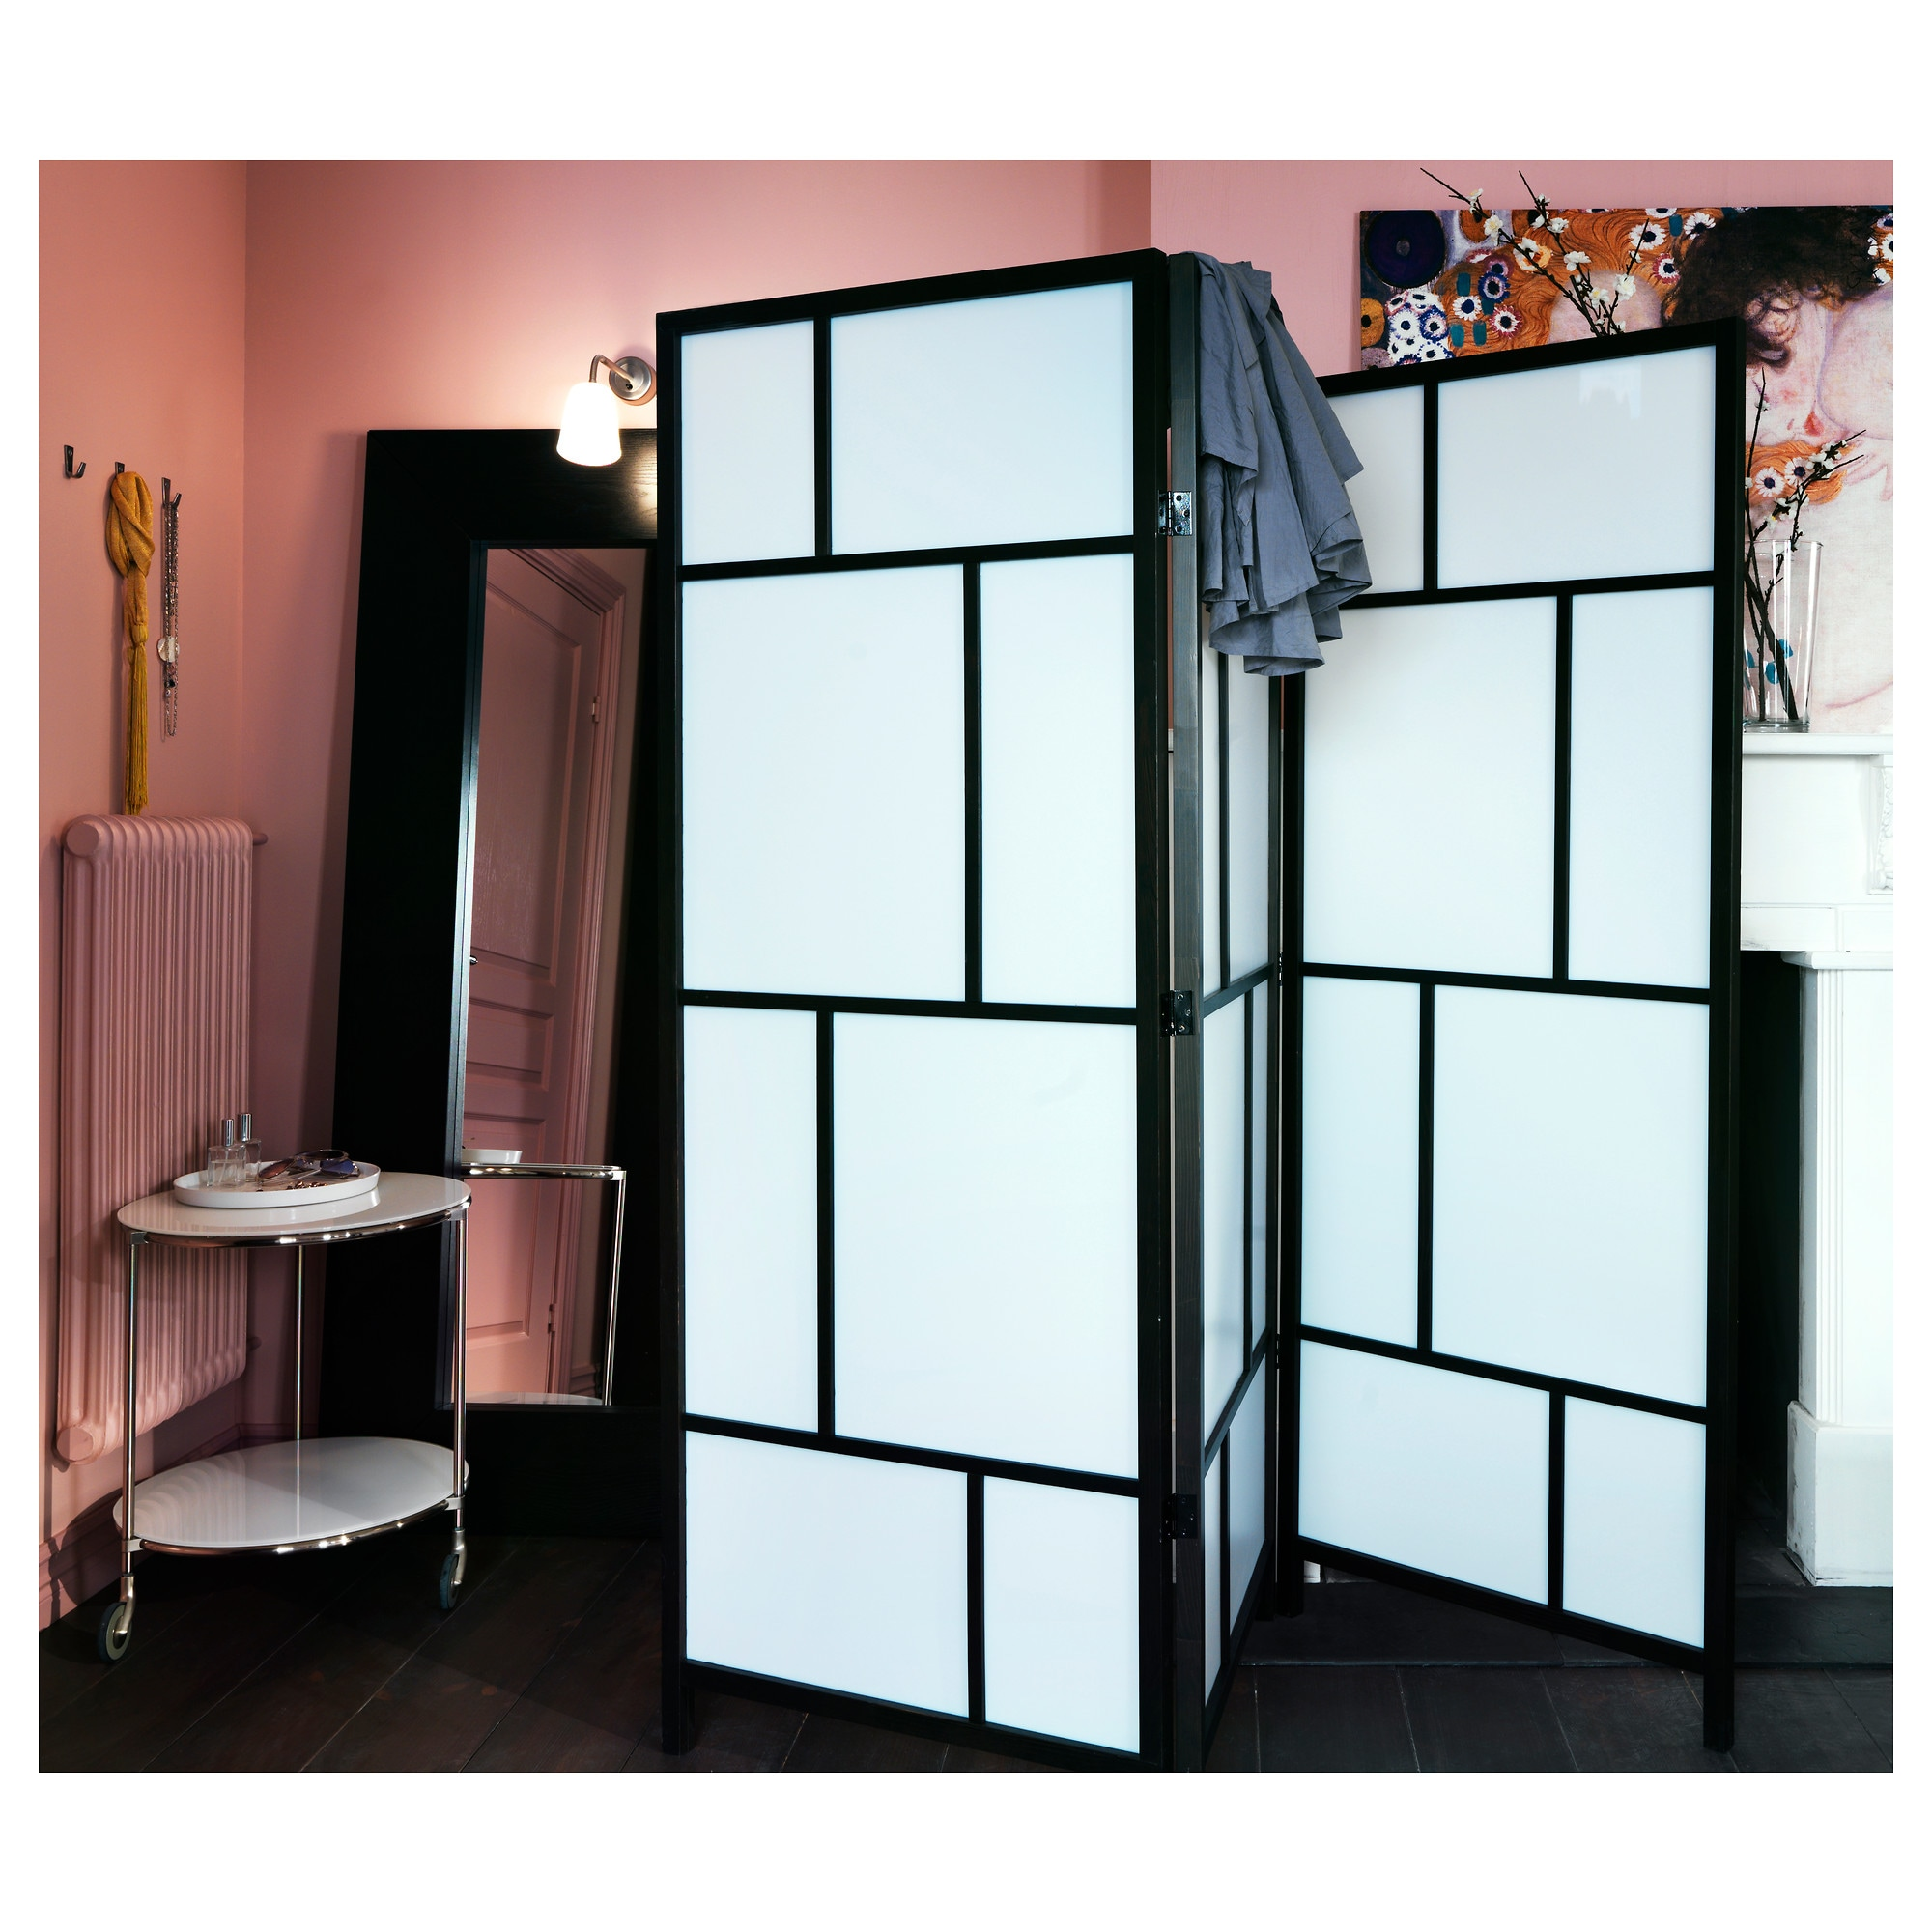 Images Of Room Dividers Interesting Risör Room Divider  Ikea Design Inspiration